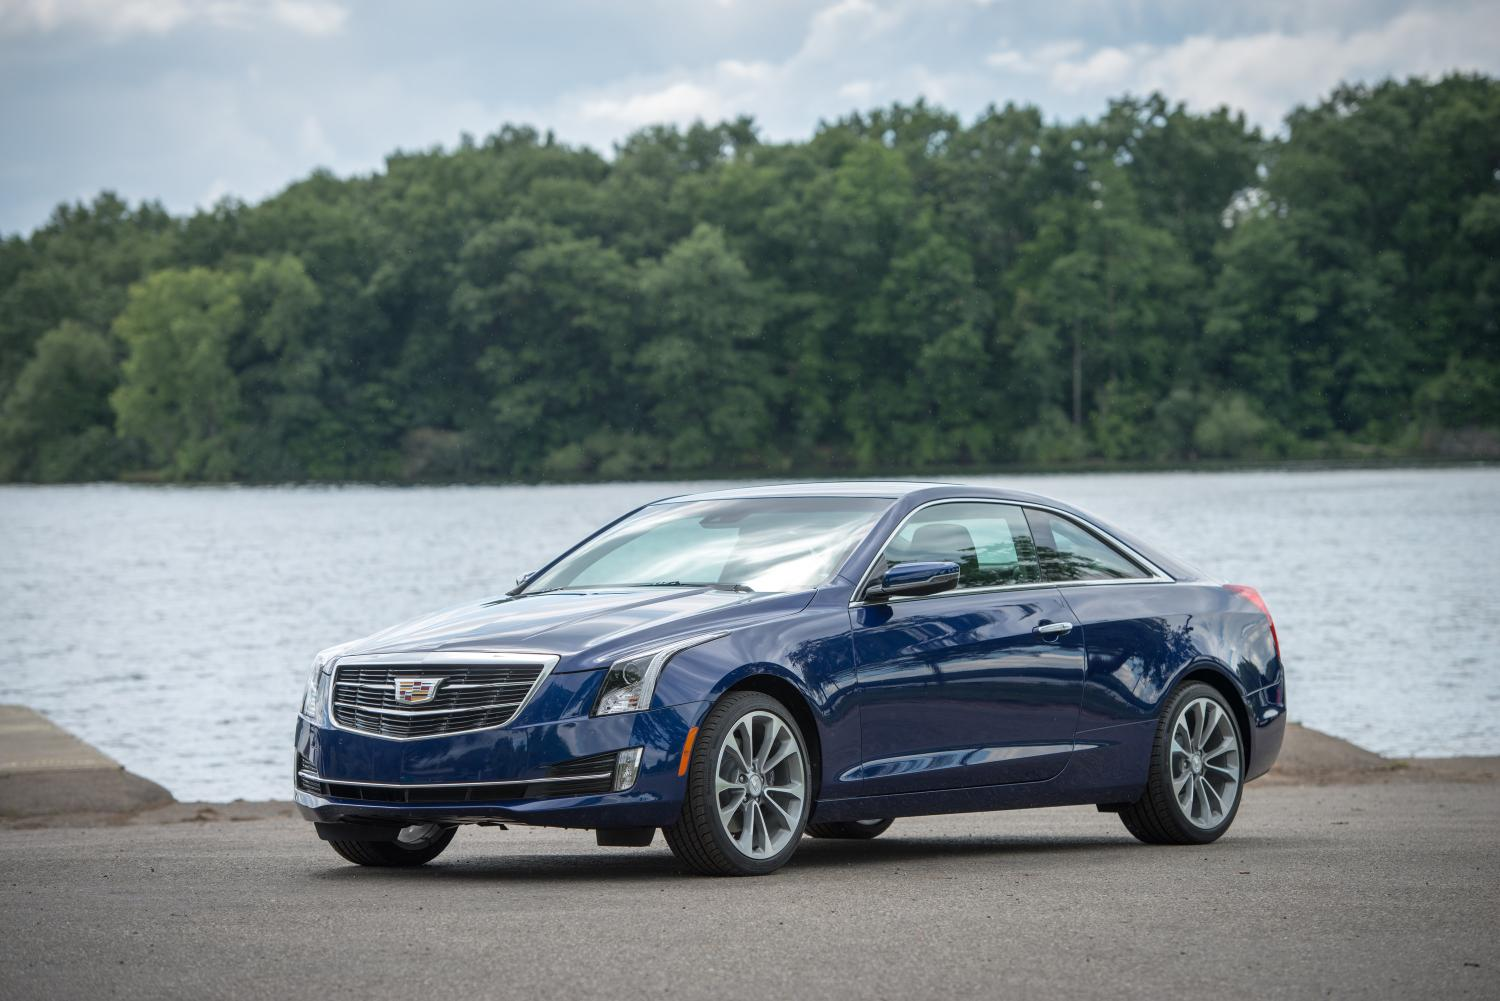 2015 cadillac ats coupe gets more torquey 2 liter turbo. Black Bedroom Furniture Sets. Home Design Ideas